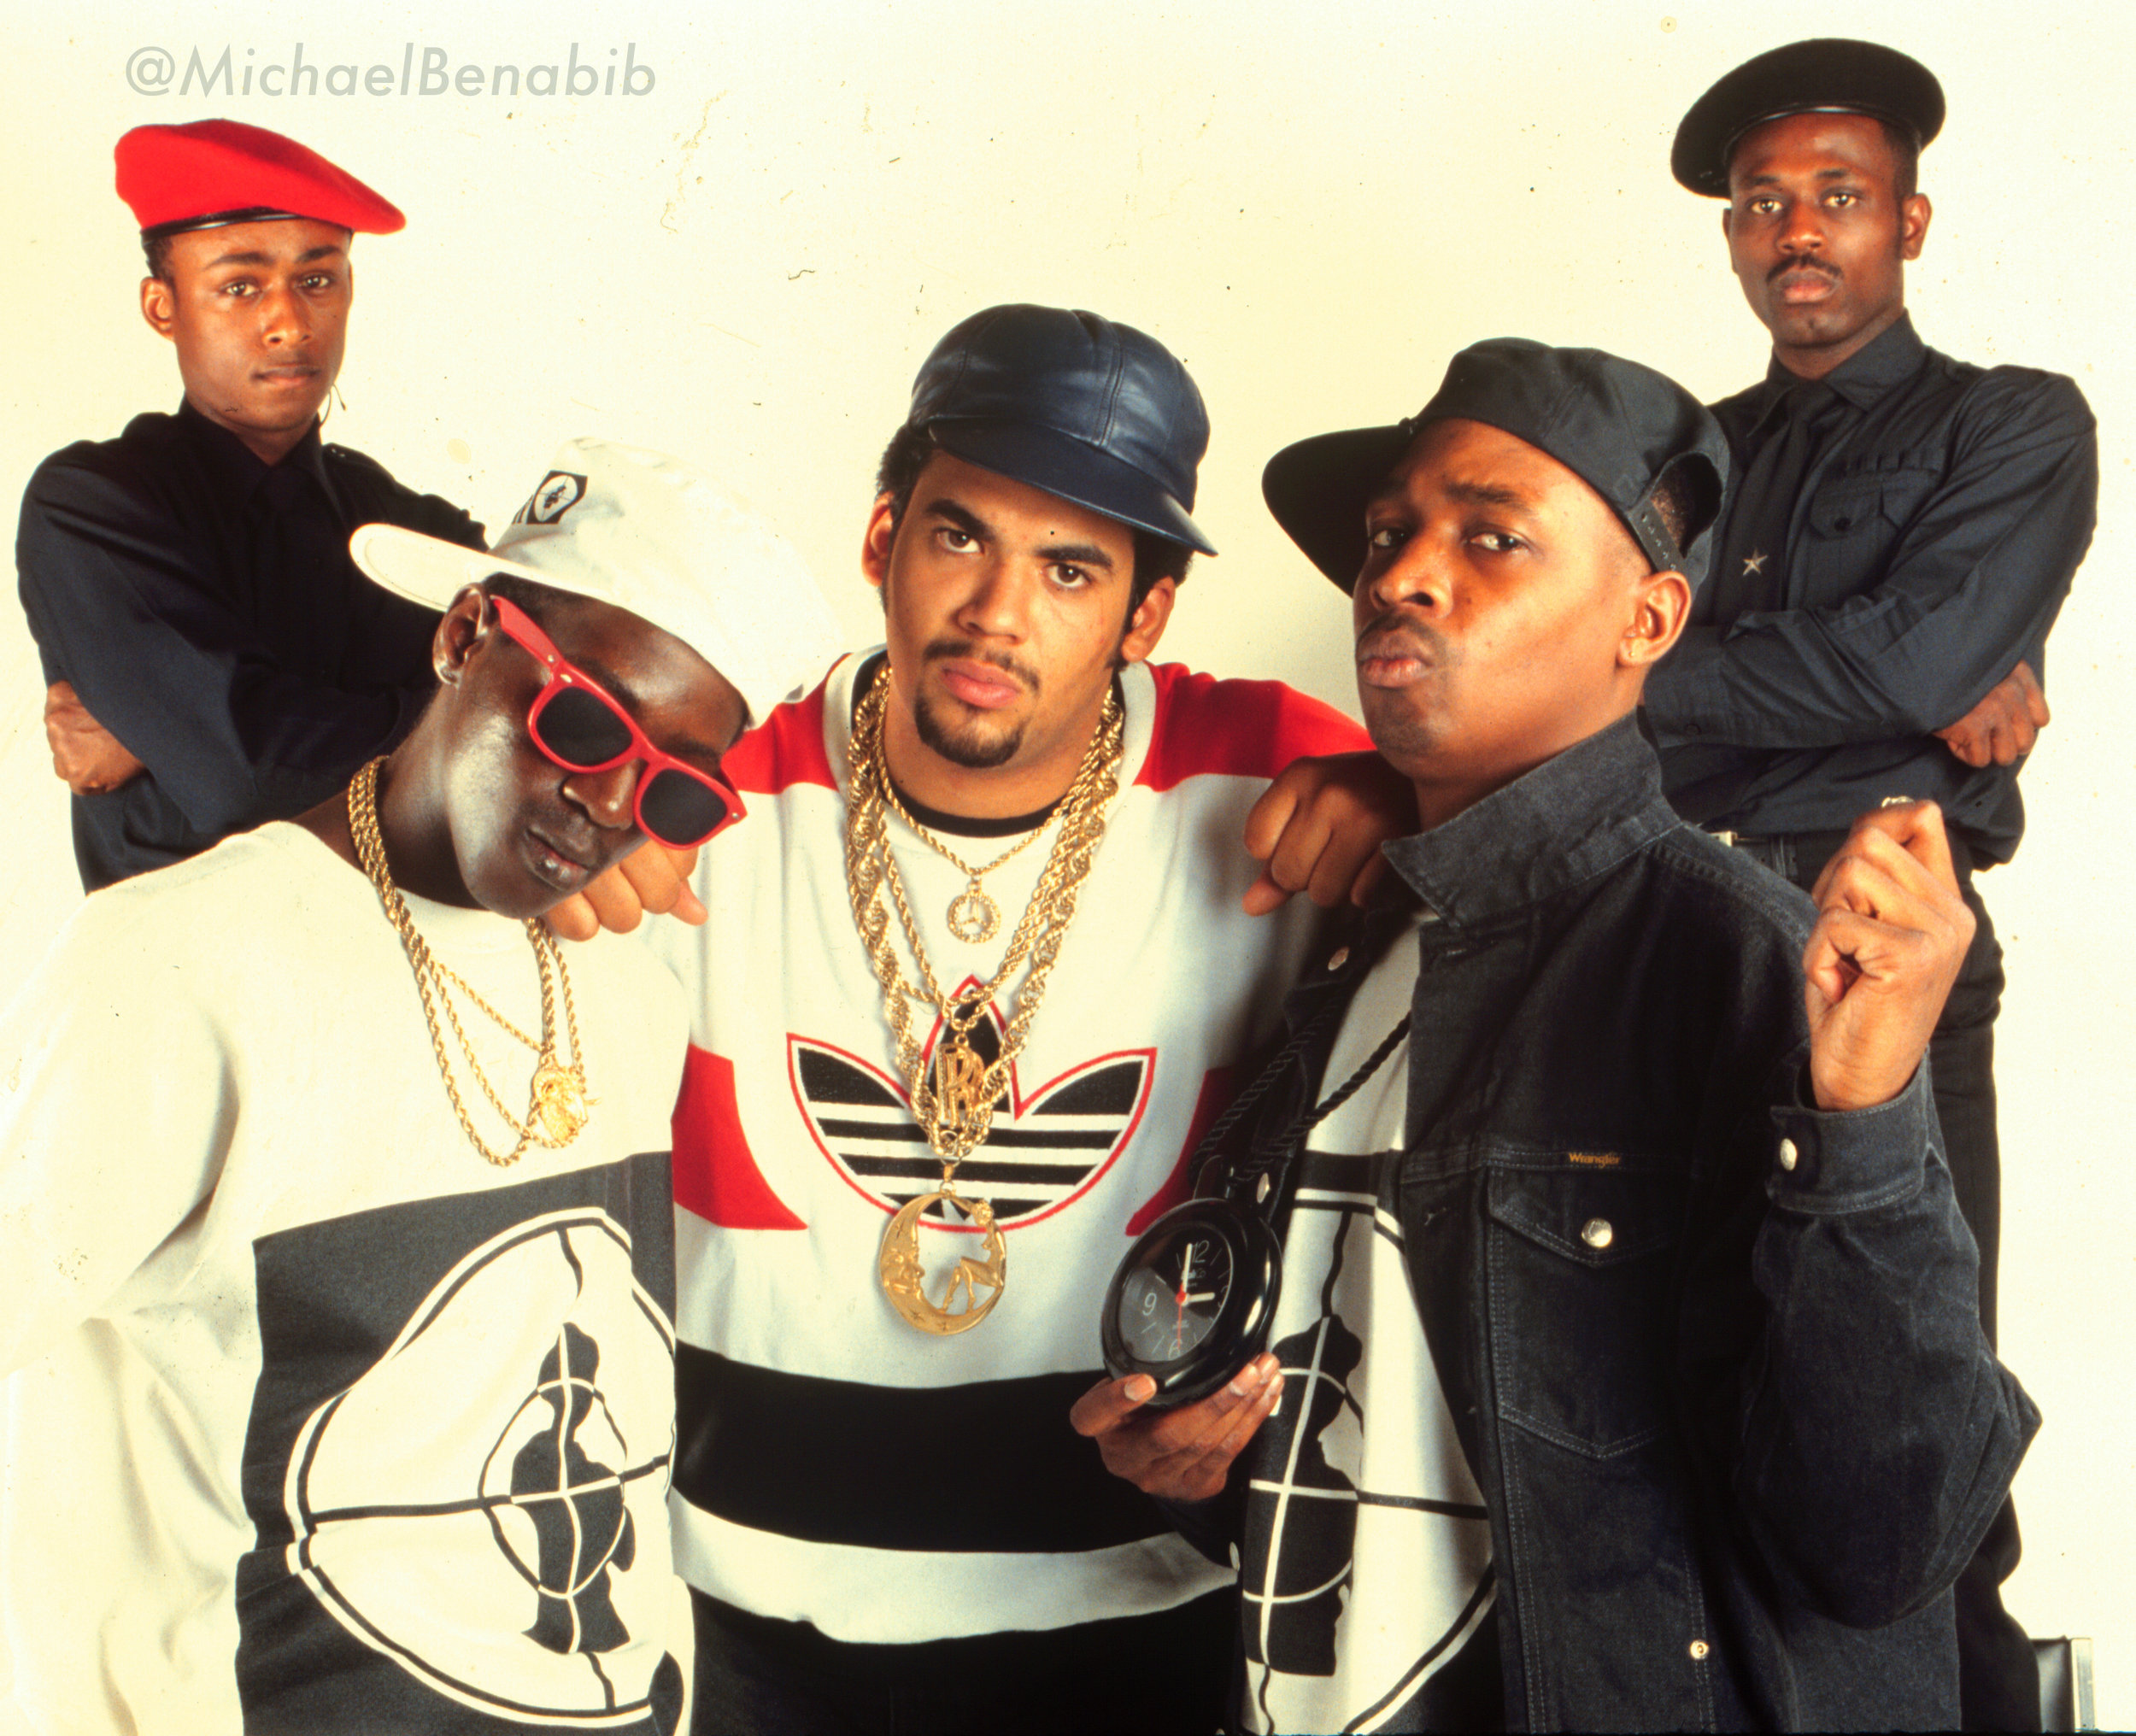 I photographed Public Enemy in 1987 when they first started out. This is the only photo you'll see with Chuck D wearing the clock before it became Flavor Flav's trademark. Happy belated birthday to Chuck D